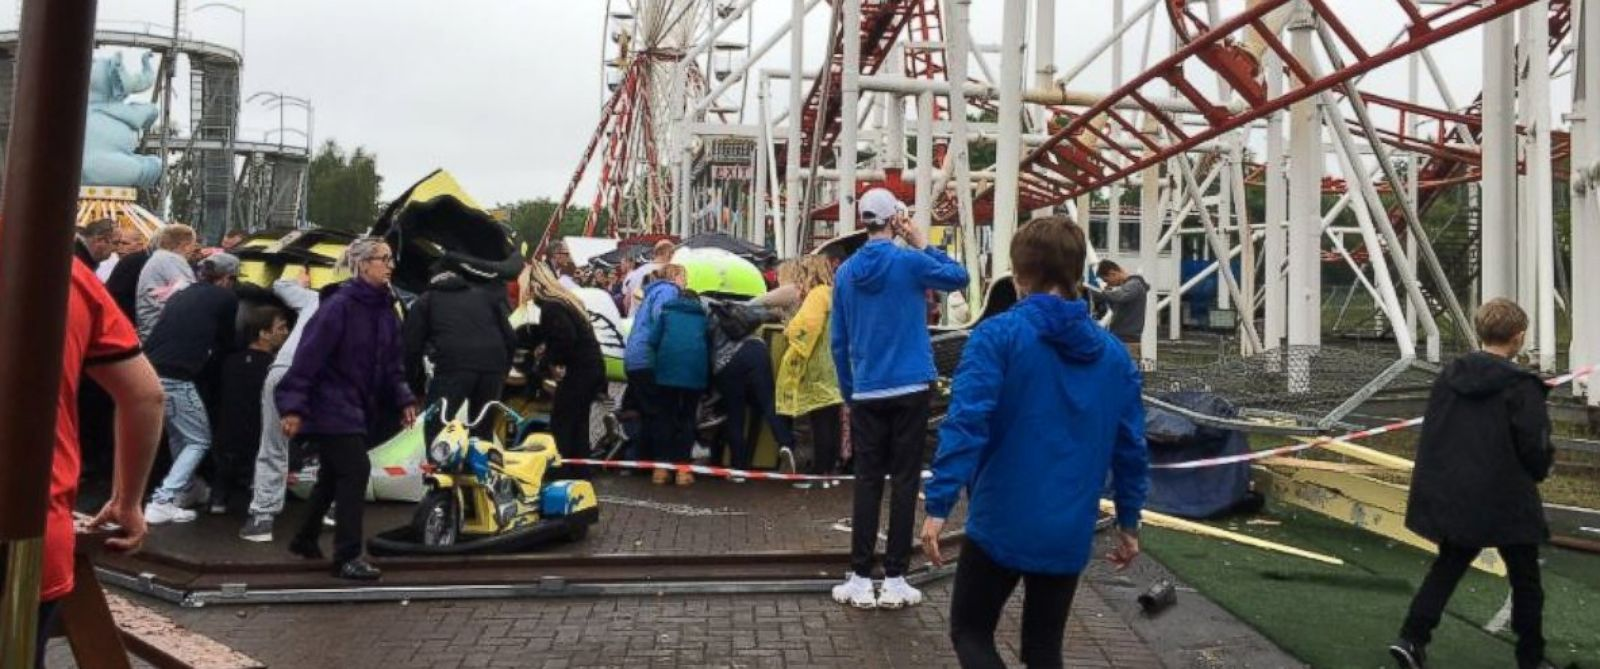 PHOTO: Emergency Services are responding to an ongoing incident at M&D Theme Park in Motherwell, Scotland.